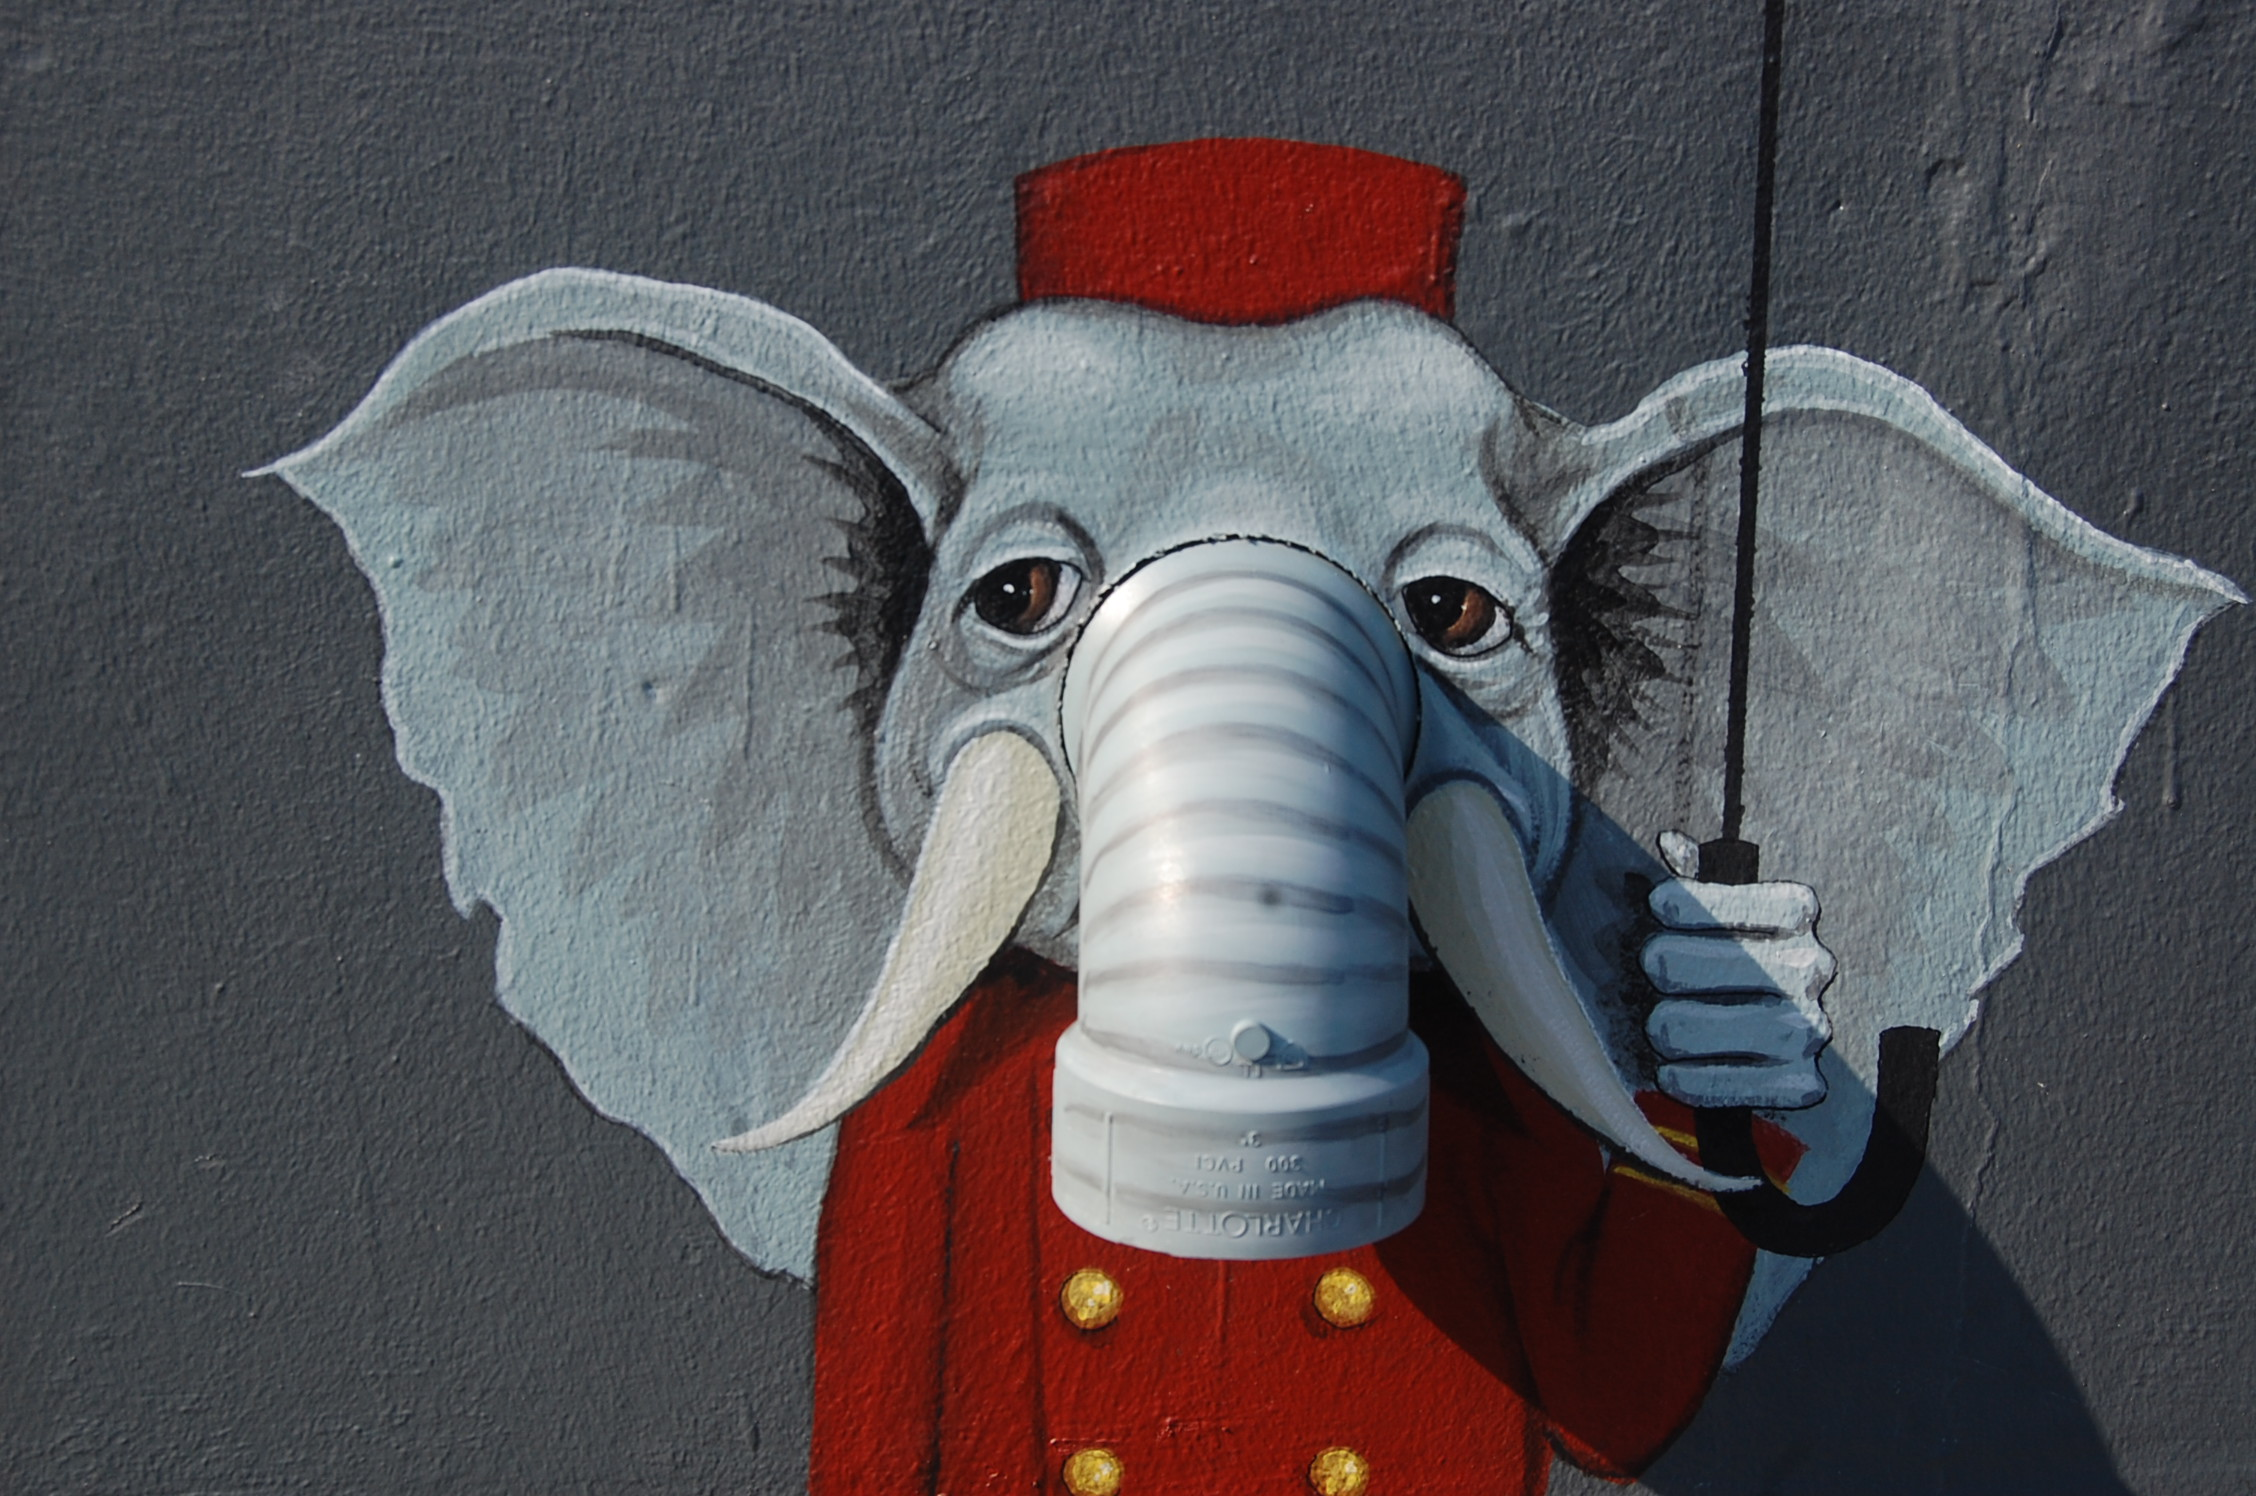 The Elephant Bellhop